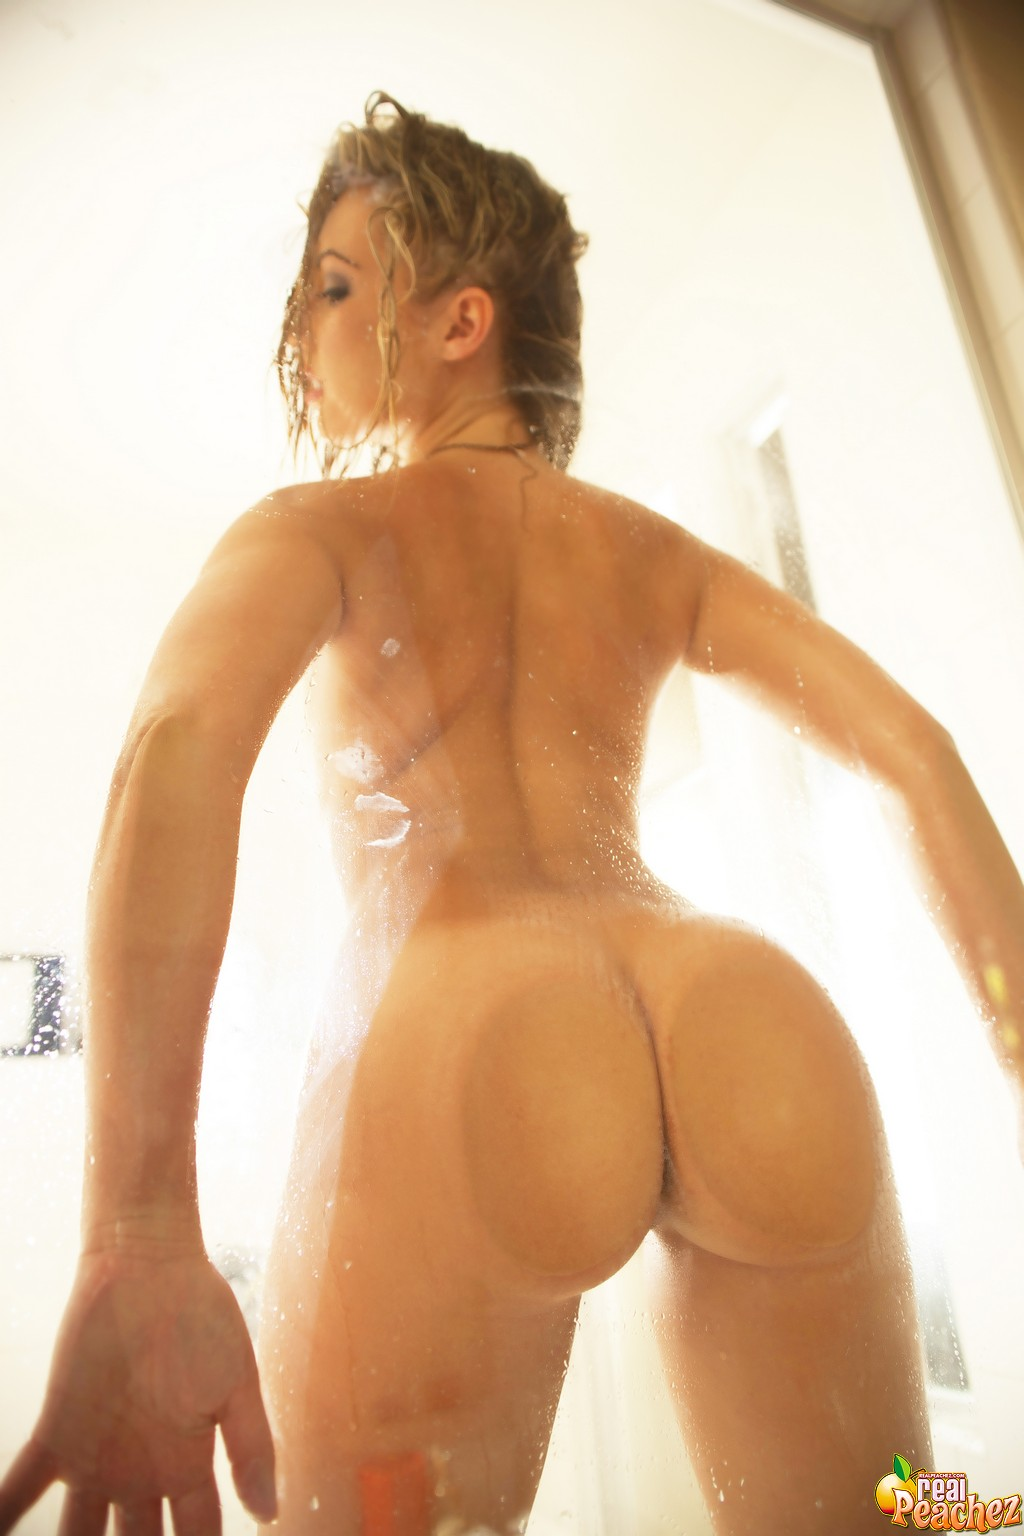 Ghana reality shower nude shower 3